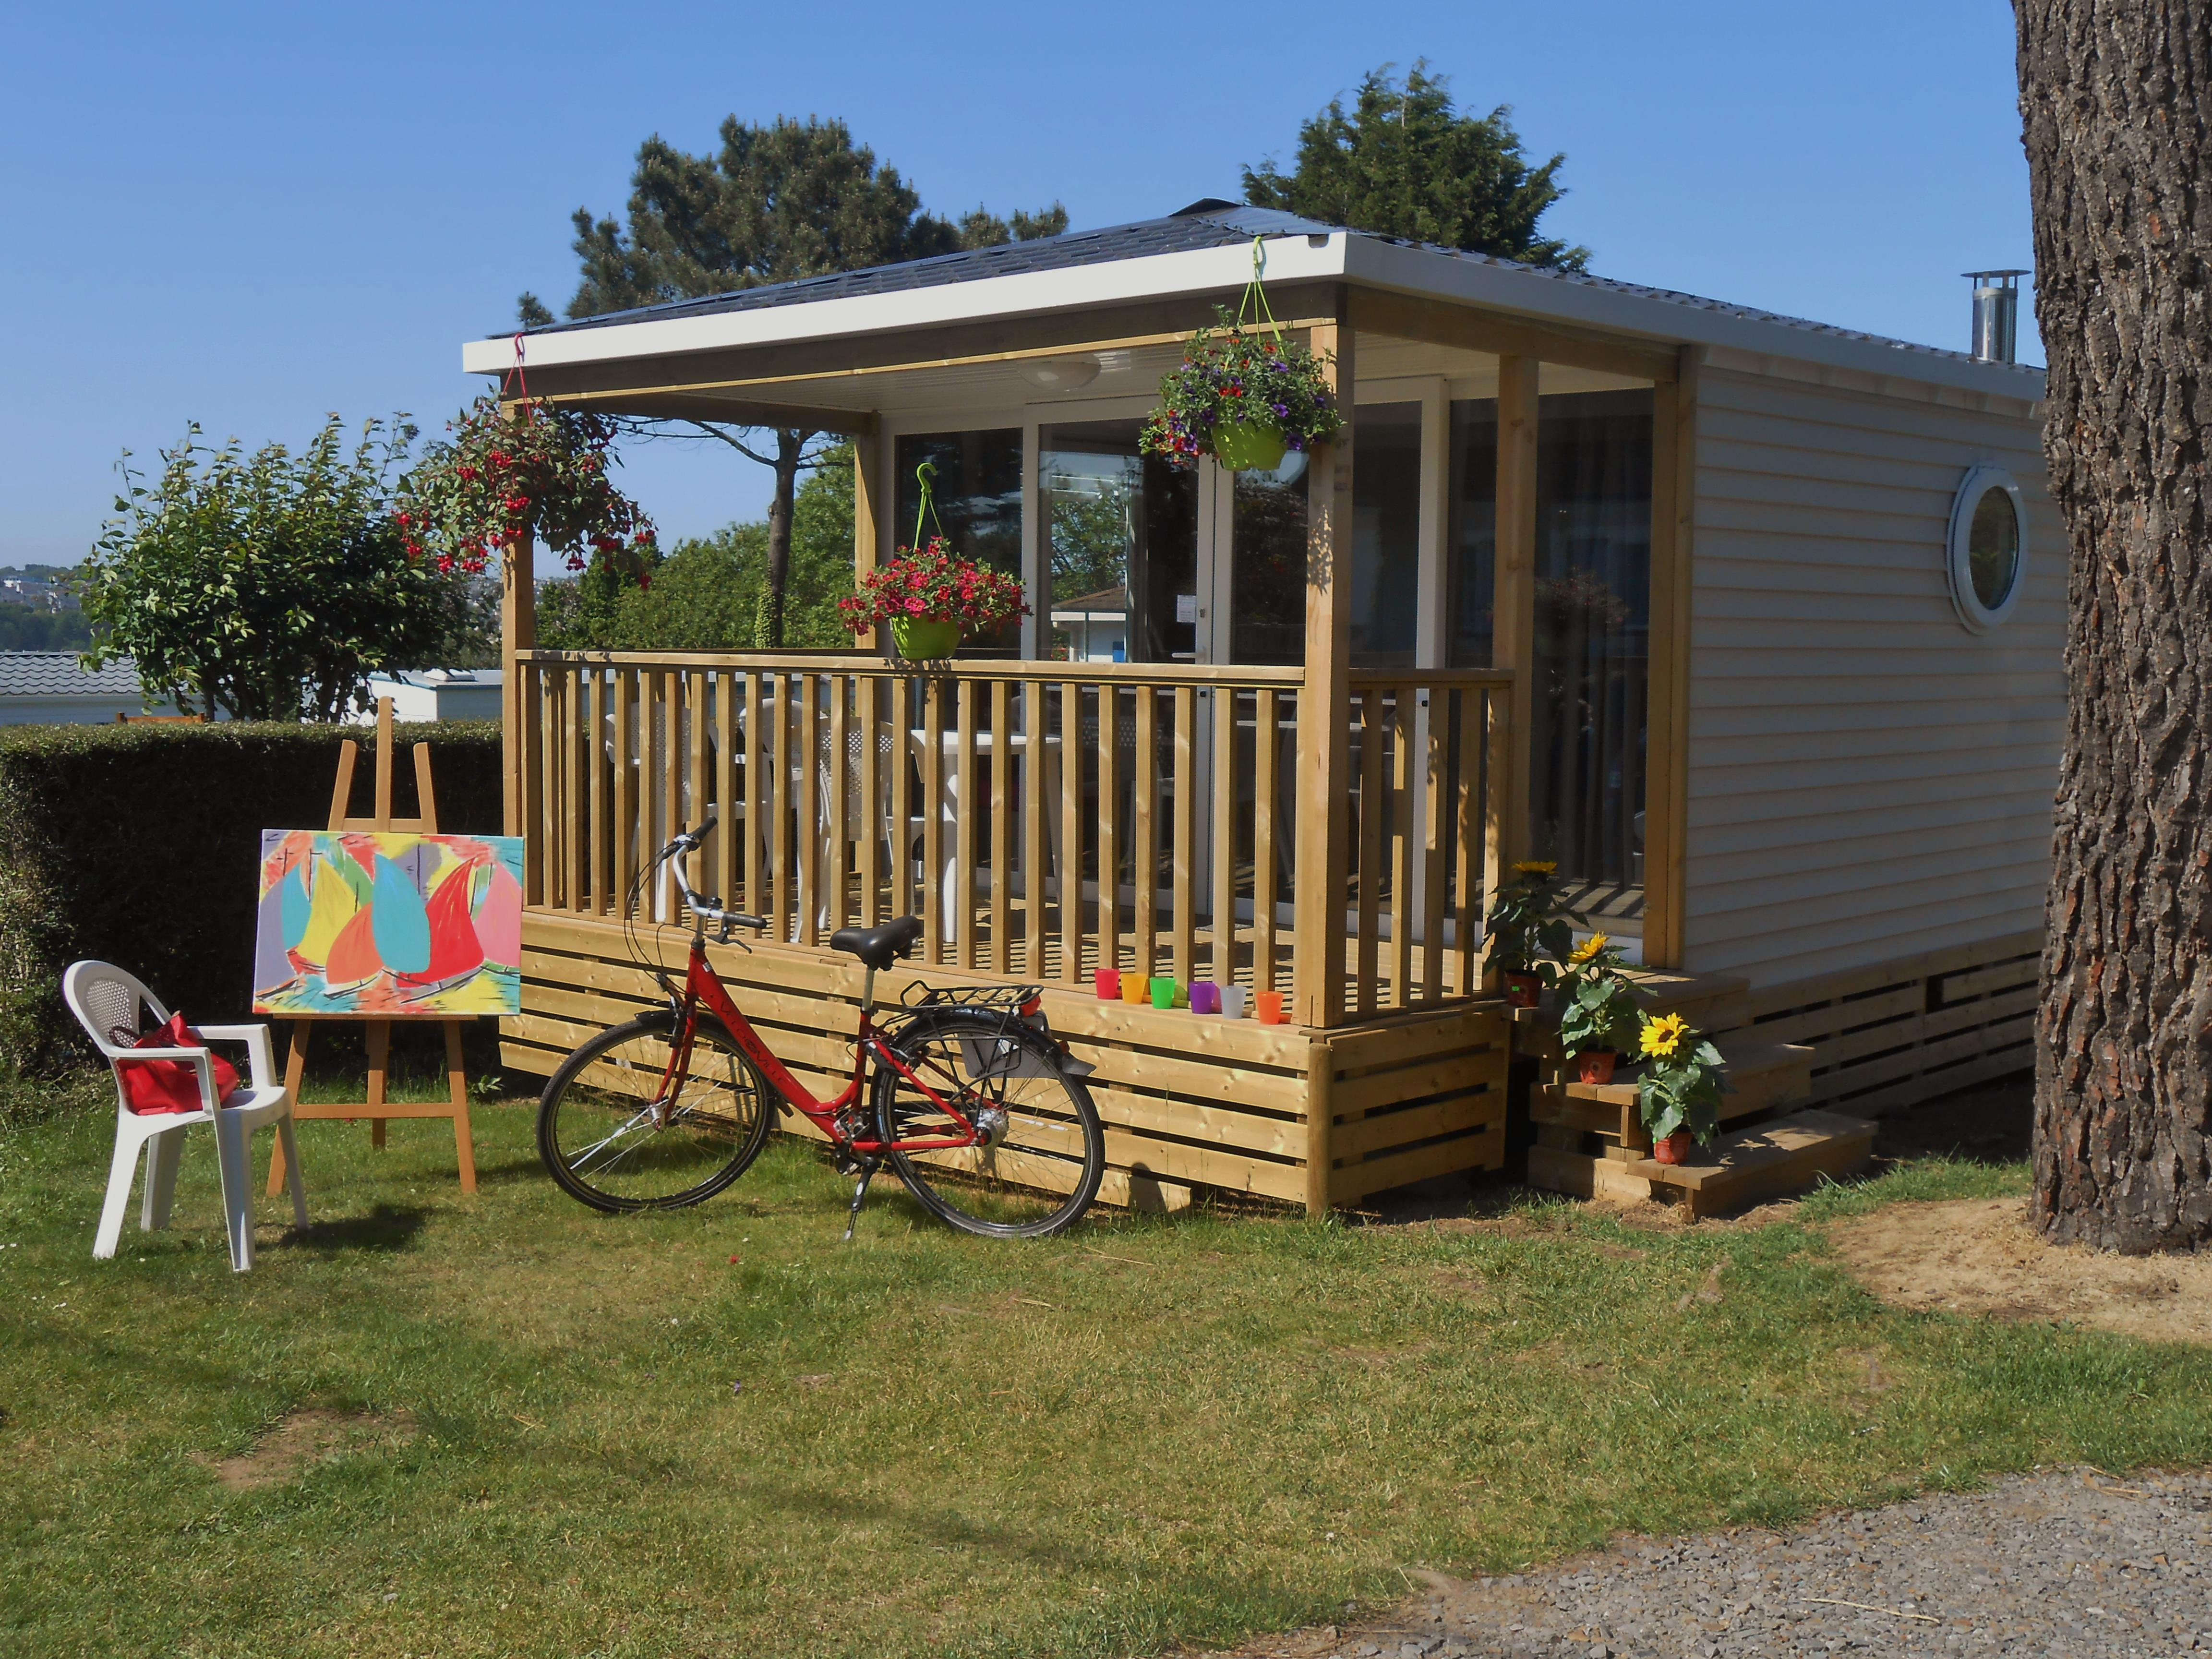 Location - Mobile Home Panorama 25 M² Avec Terrasse Couverte - Camping Le Panoramic